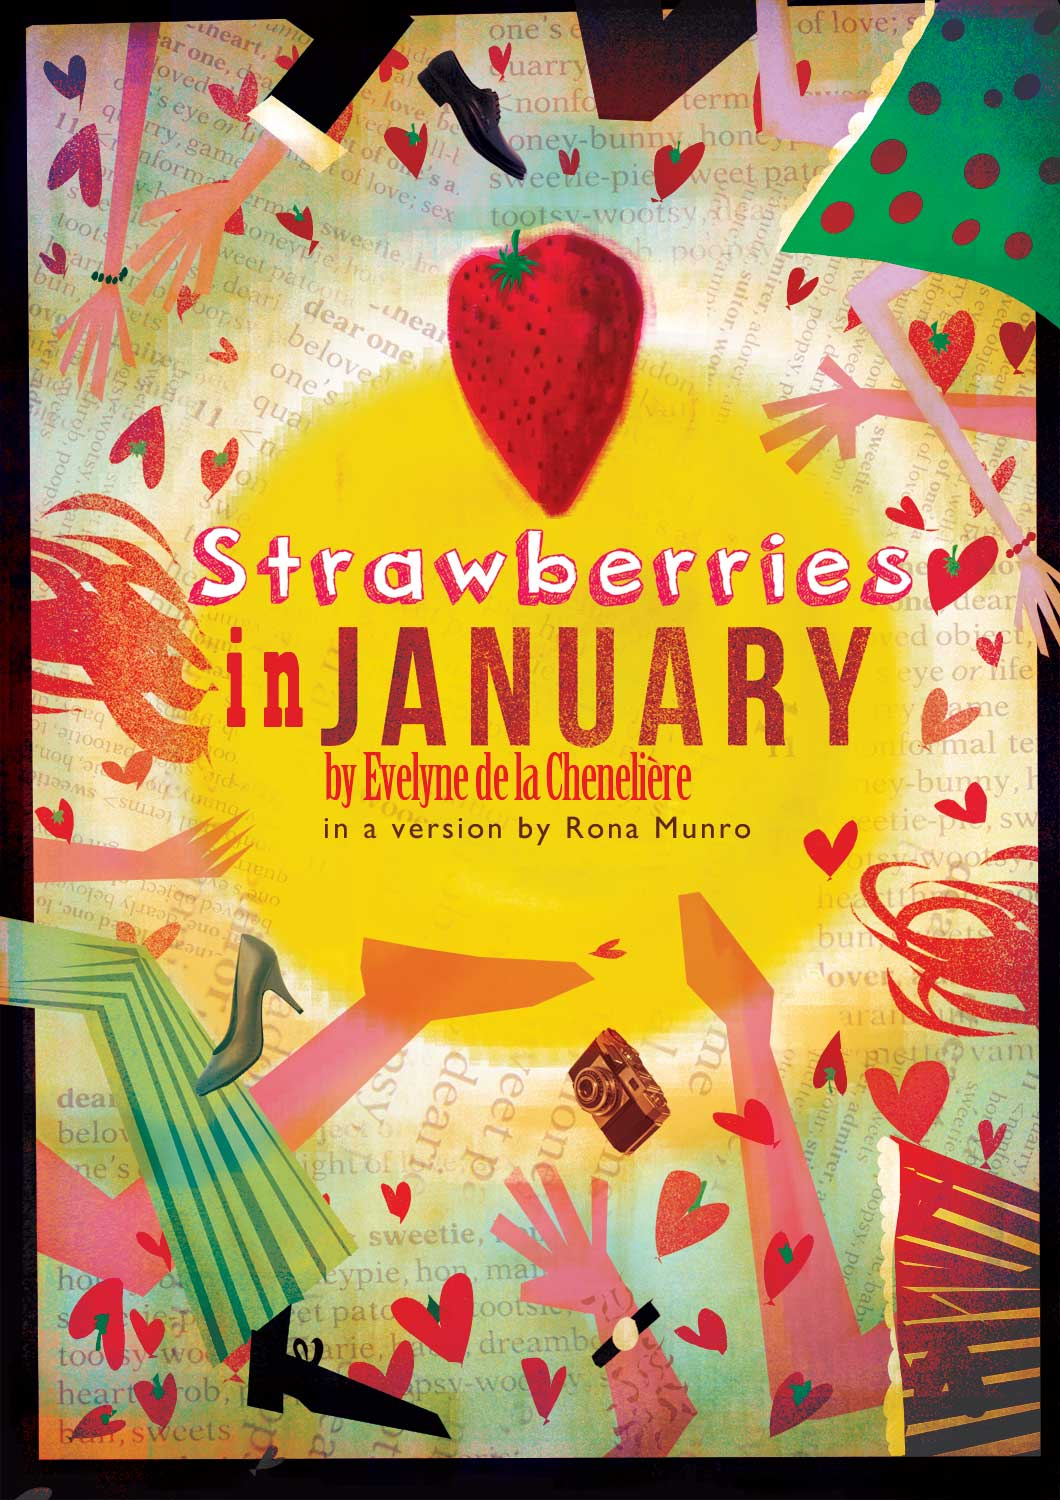 Strawberries in January - Cygnet Theatre